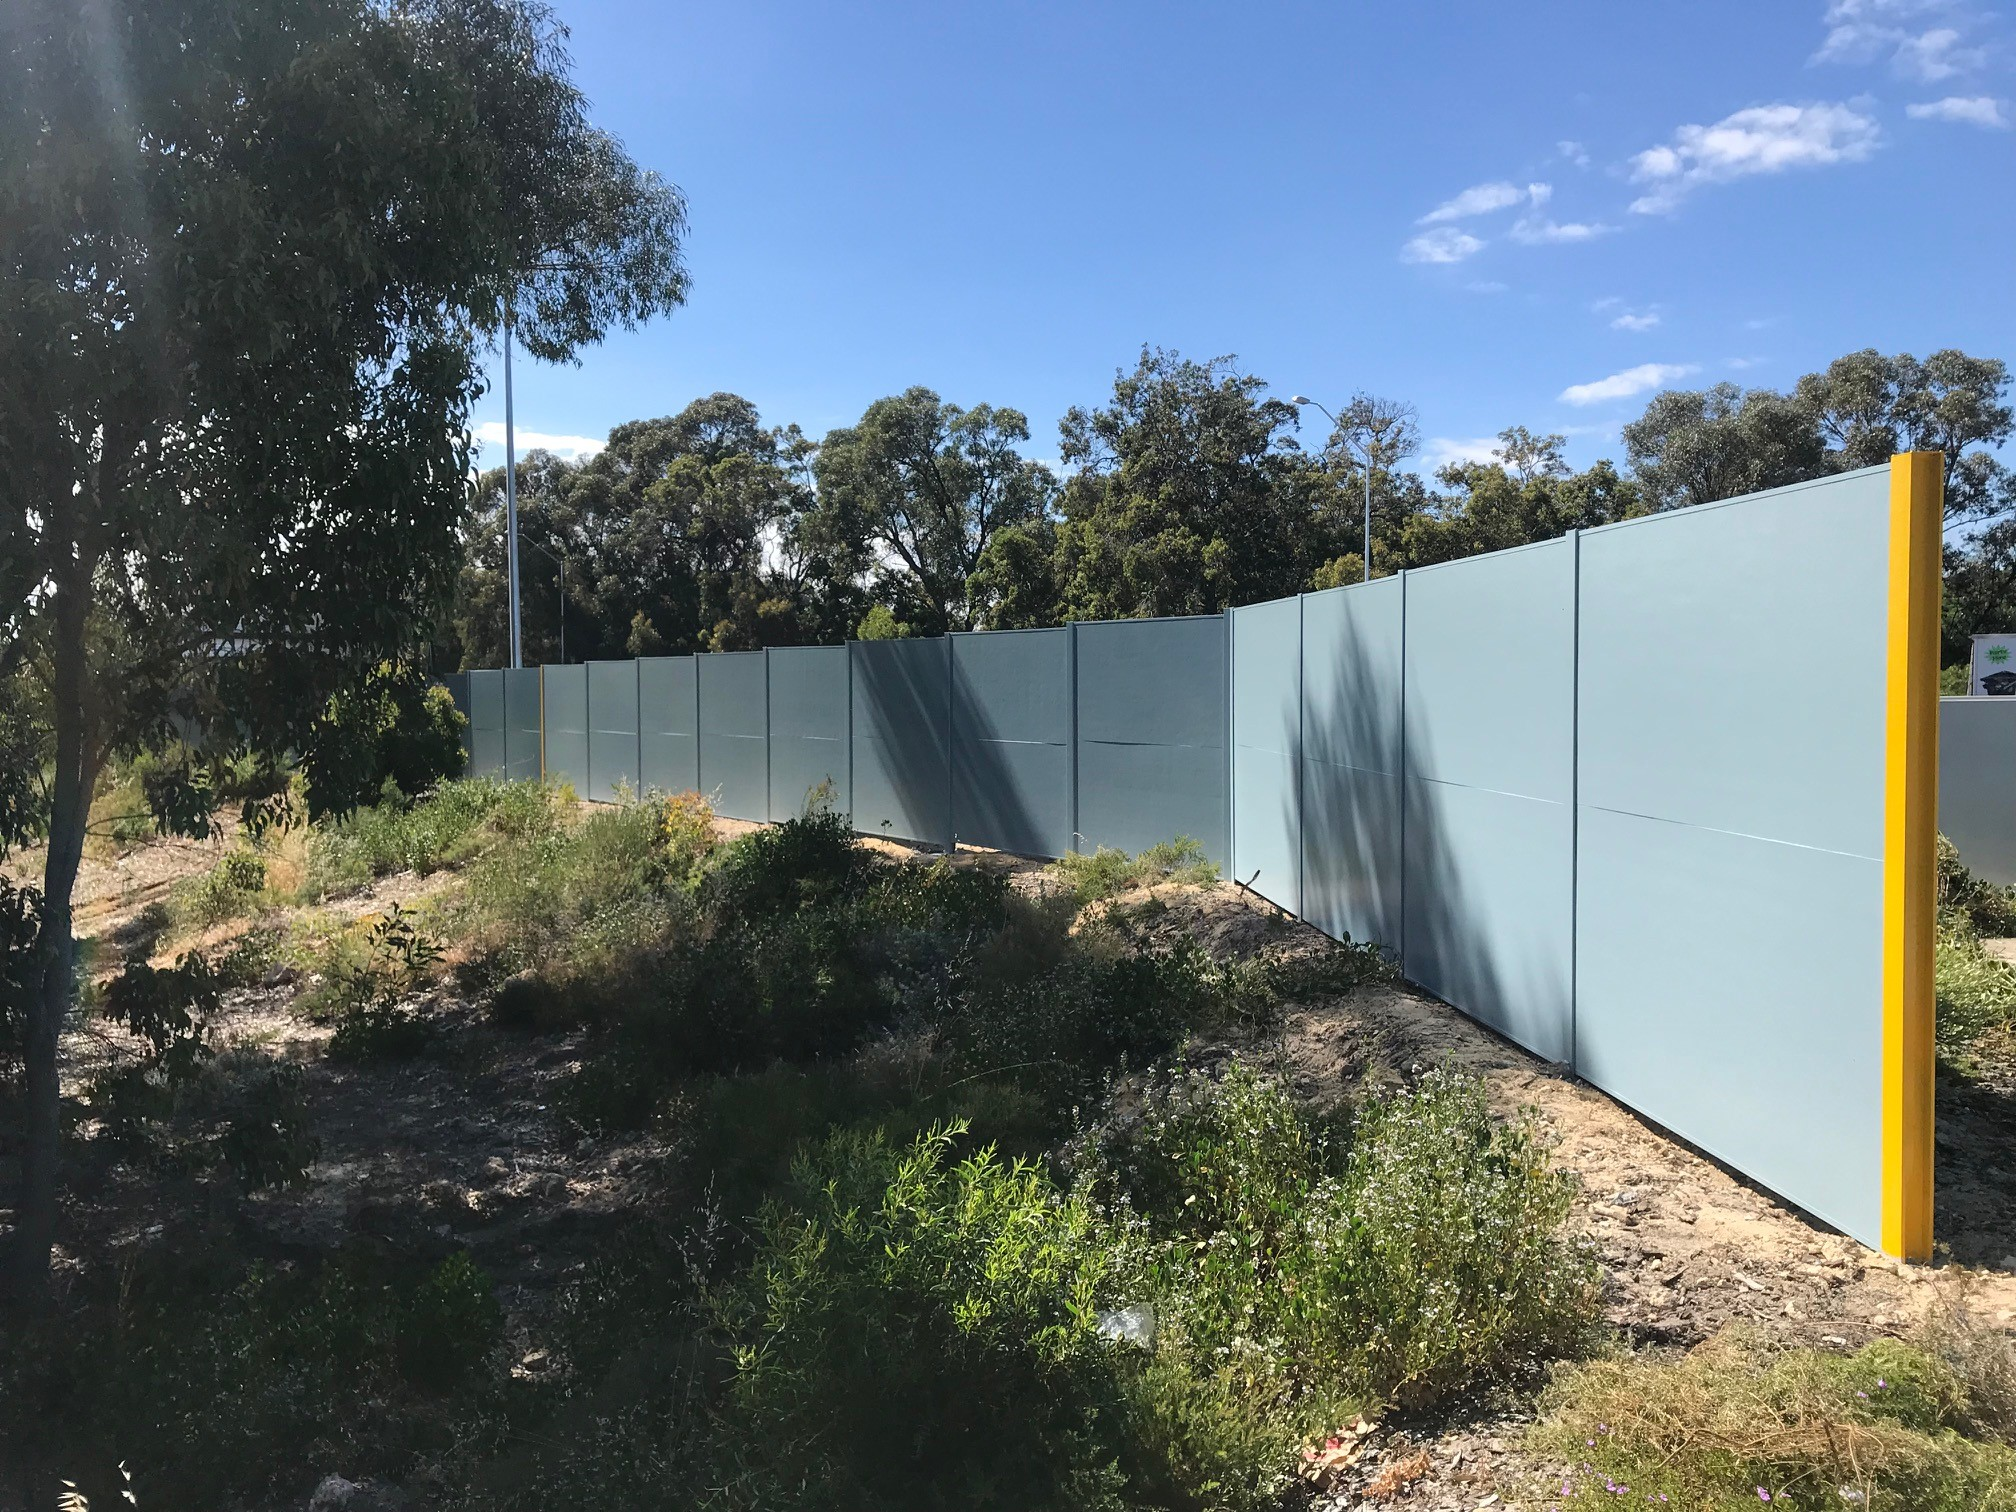 Commercial Acoustic Noise Walls Amp Fencing Perth Wa Road